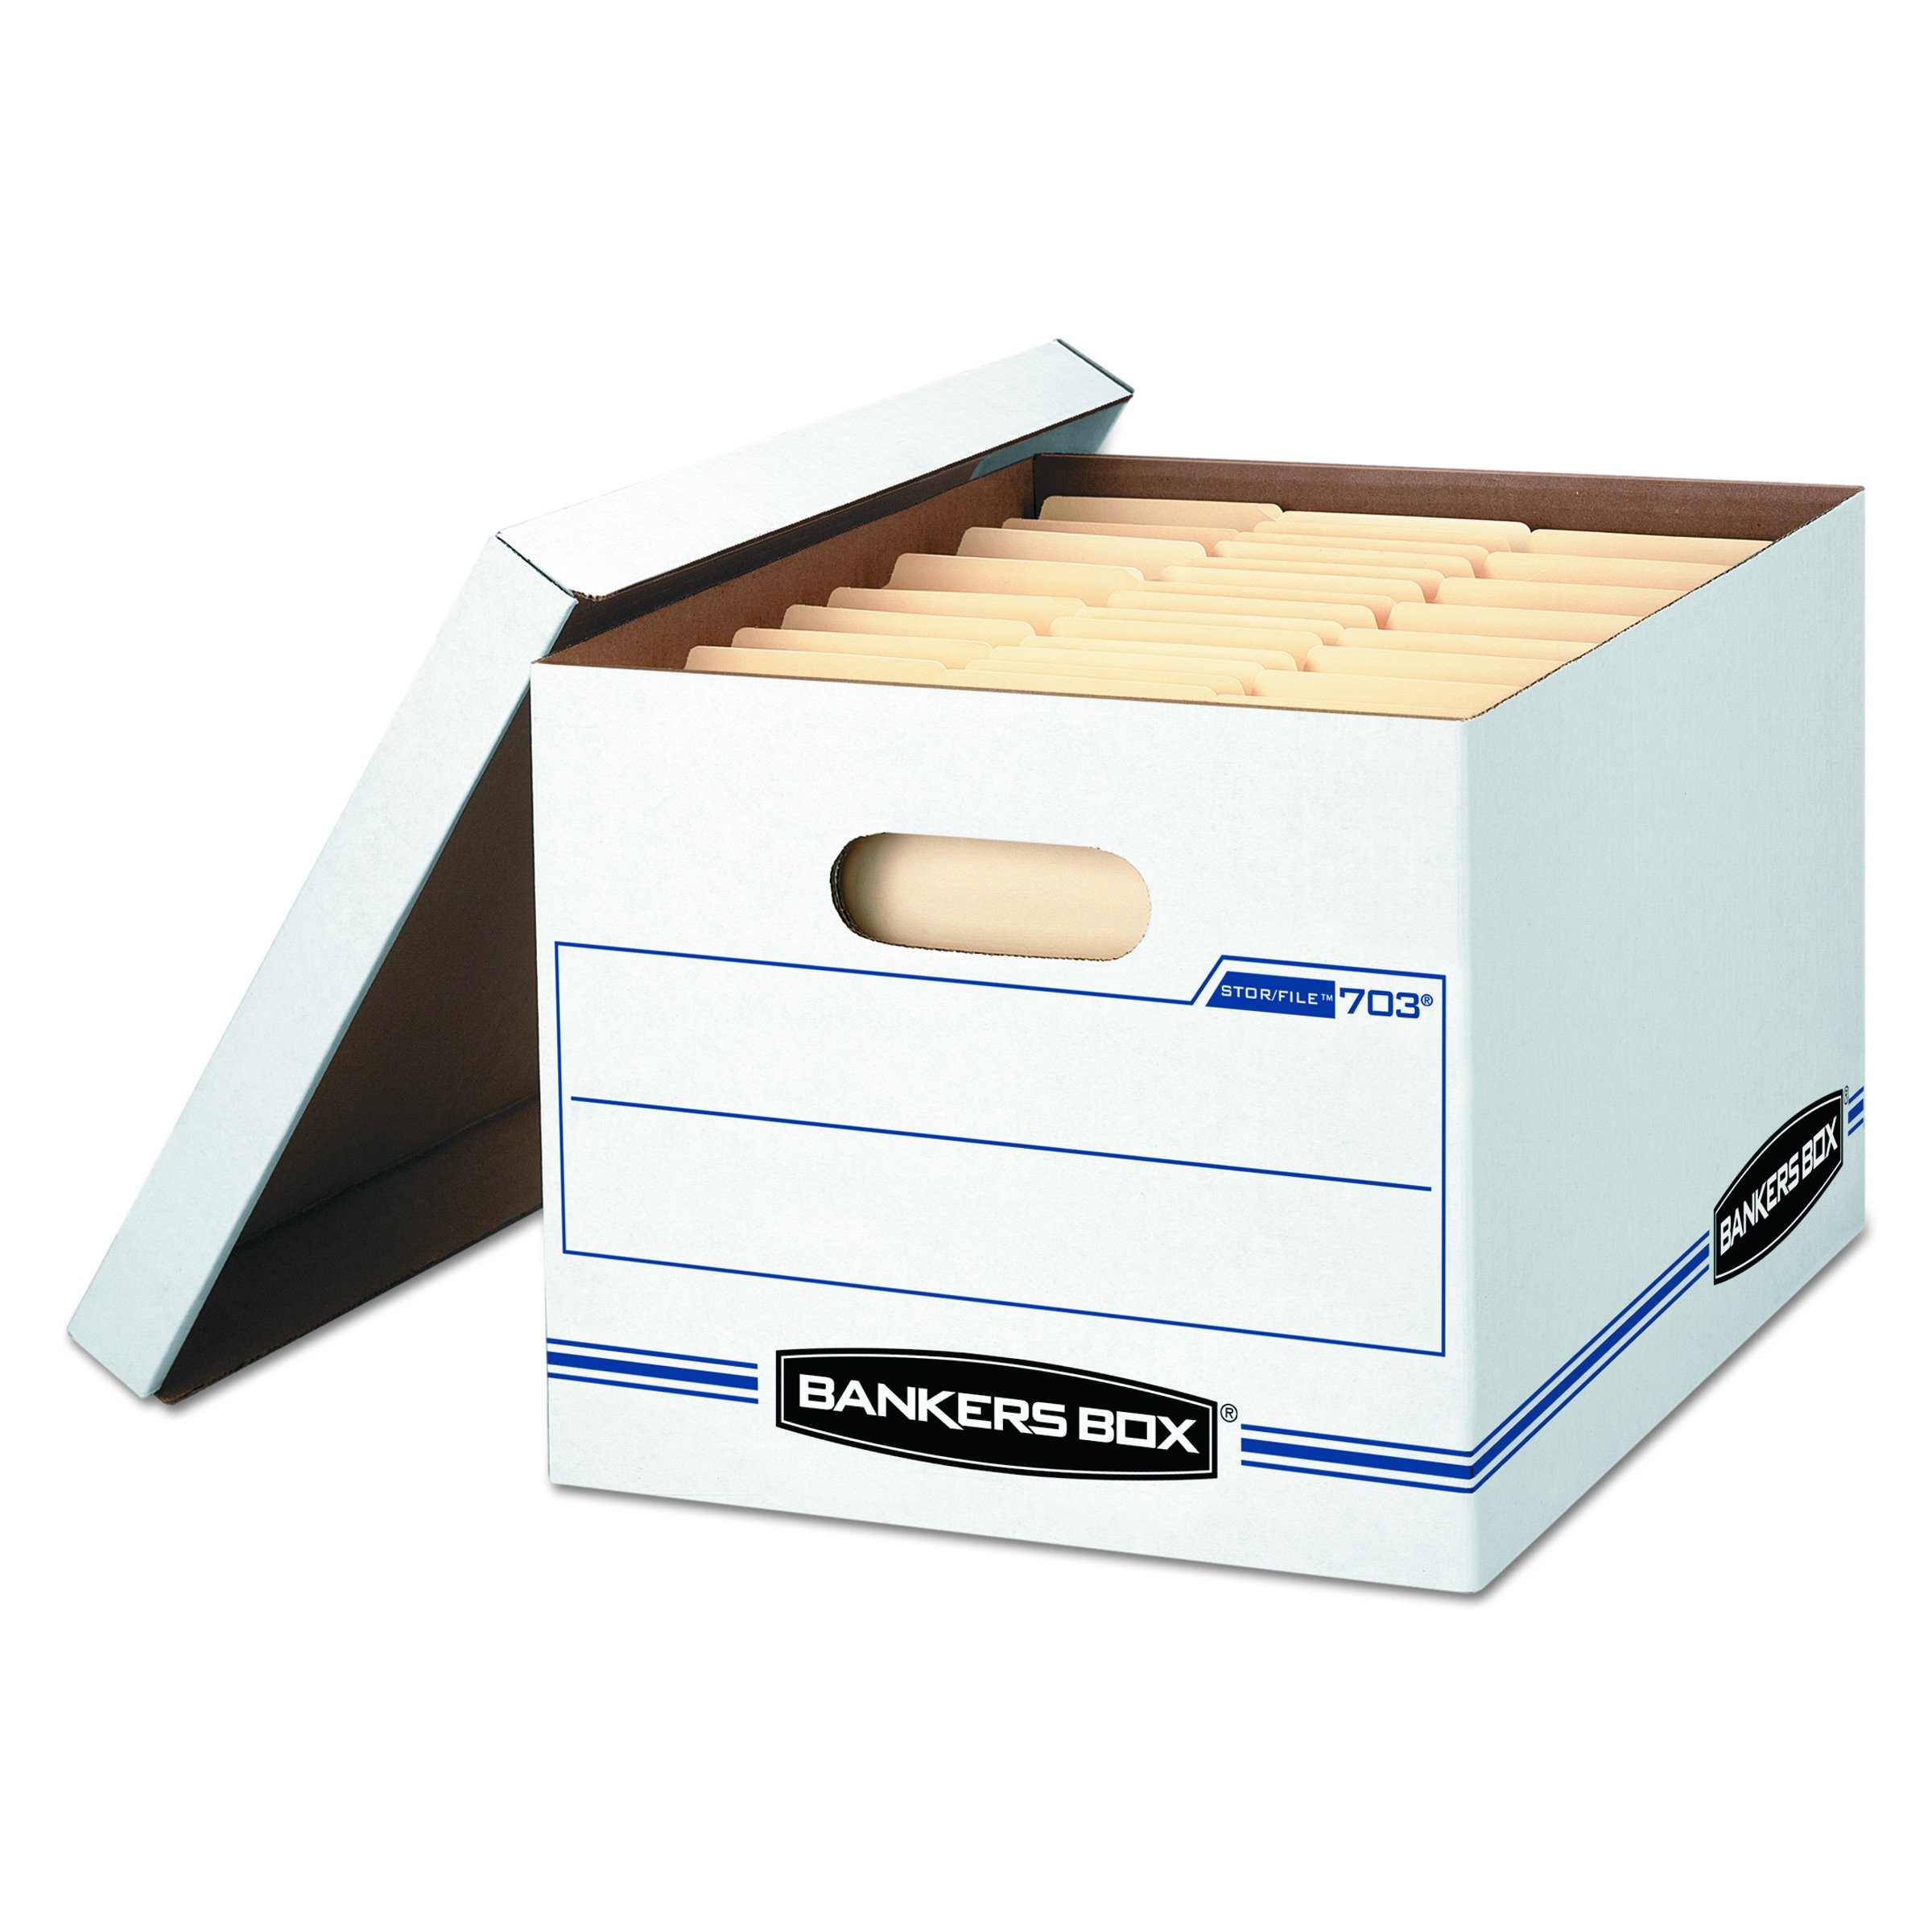 Bankers Box STOR/FILE Storage Boxes, Standard Set-Up, Lift-Off Lid, Letter/Legal, Case of 12 (00703) by Bankers Box